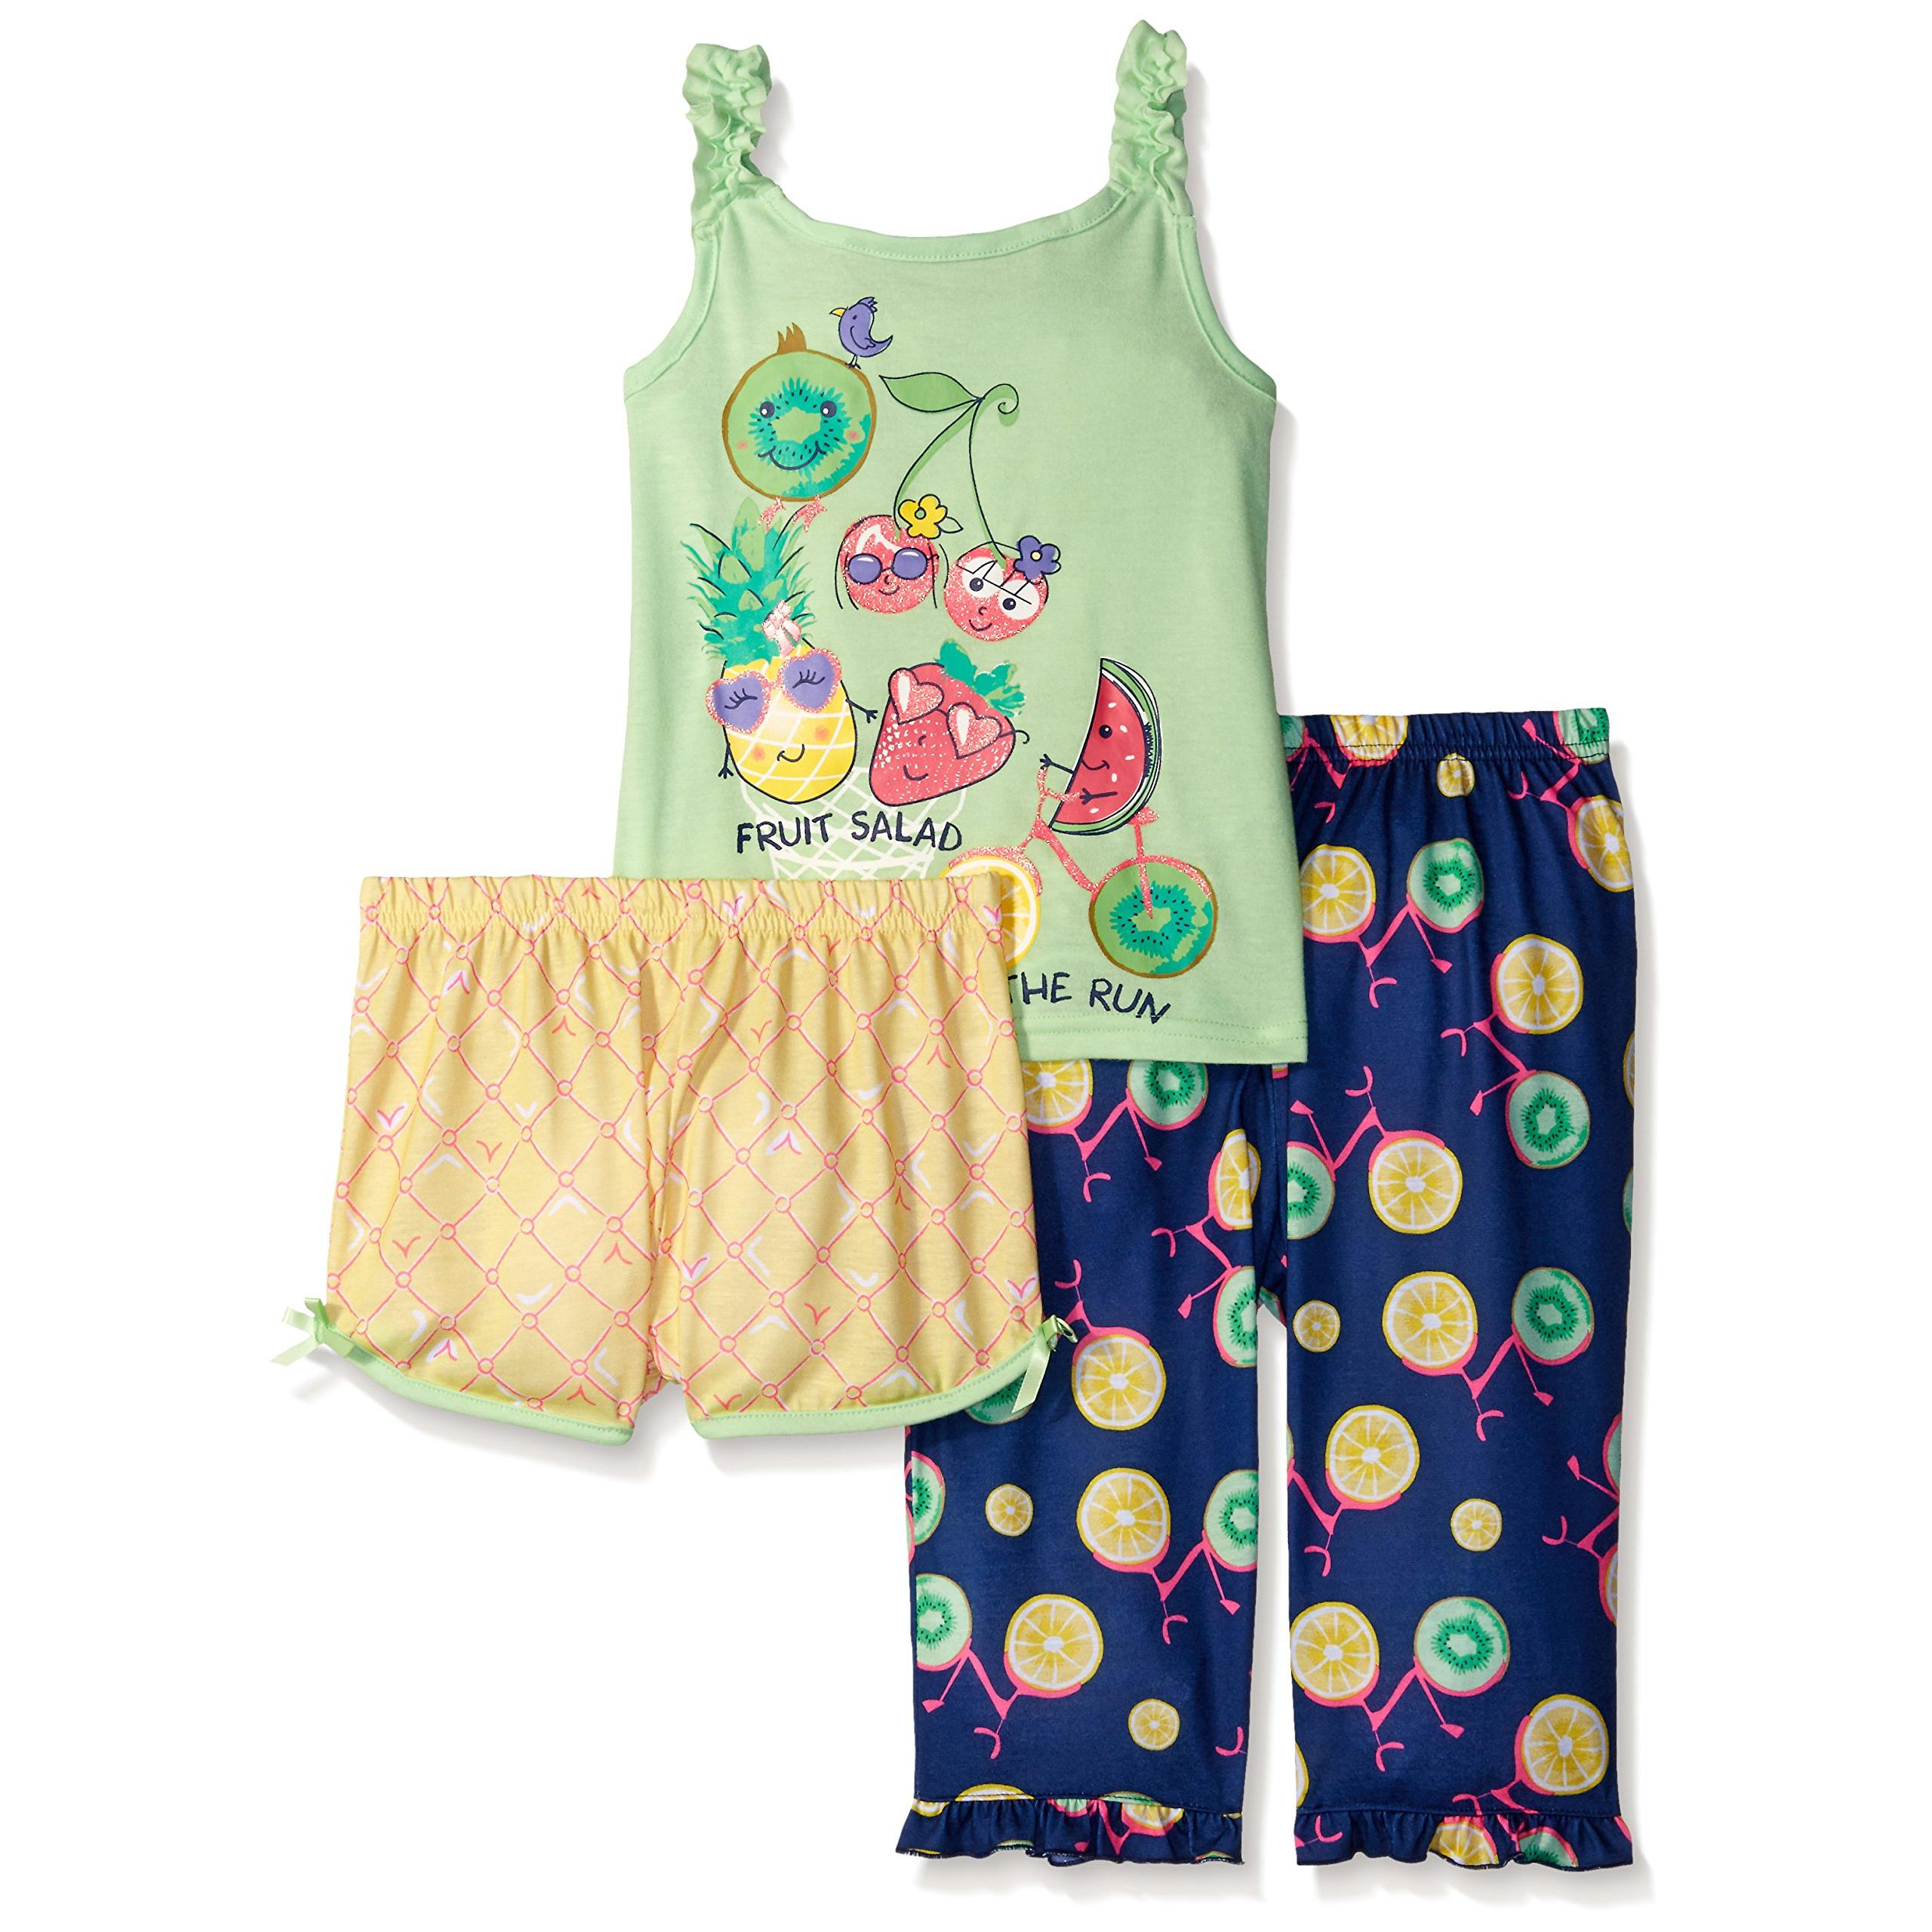 Komar Kids Girls' 3 Piece Sleepwear Set Fruit Salad Short Set with Print Pant